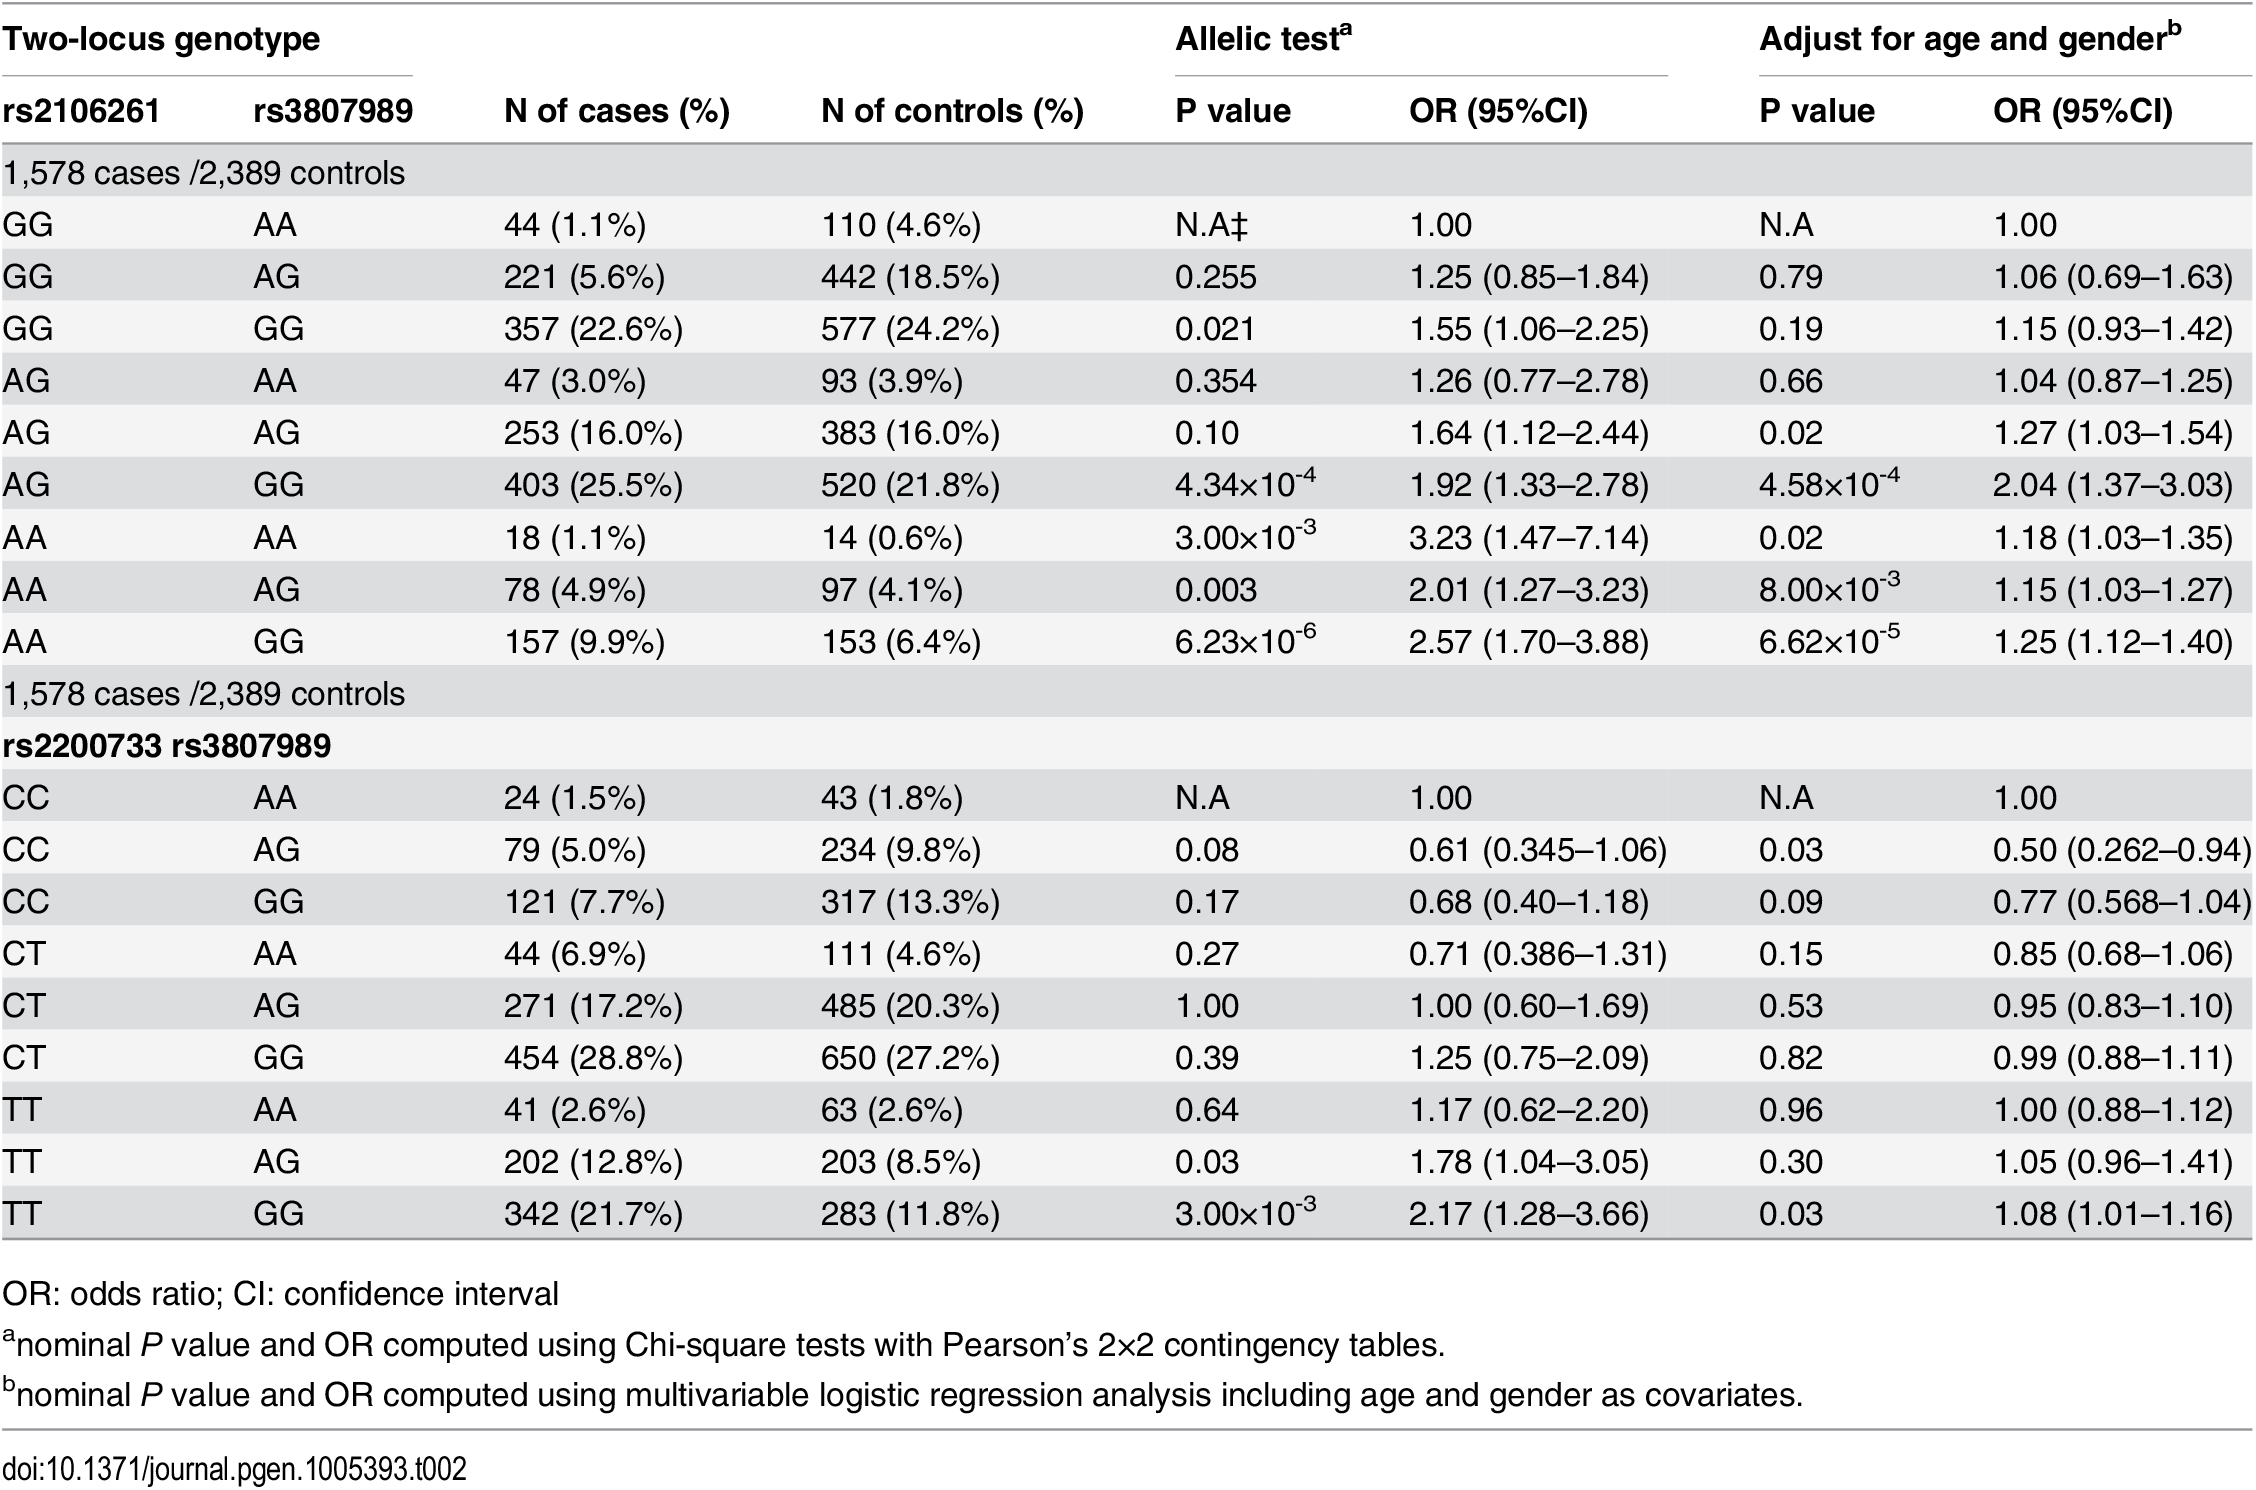 ORs for 8 two-locus genotypes versus non-risk homozygous genotype AAGG as a reference for SNPs rs2106261 and rs3807989, CCAA as a reference for SNPs rs2200733 and rs3807989 in the Chinese Han population.